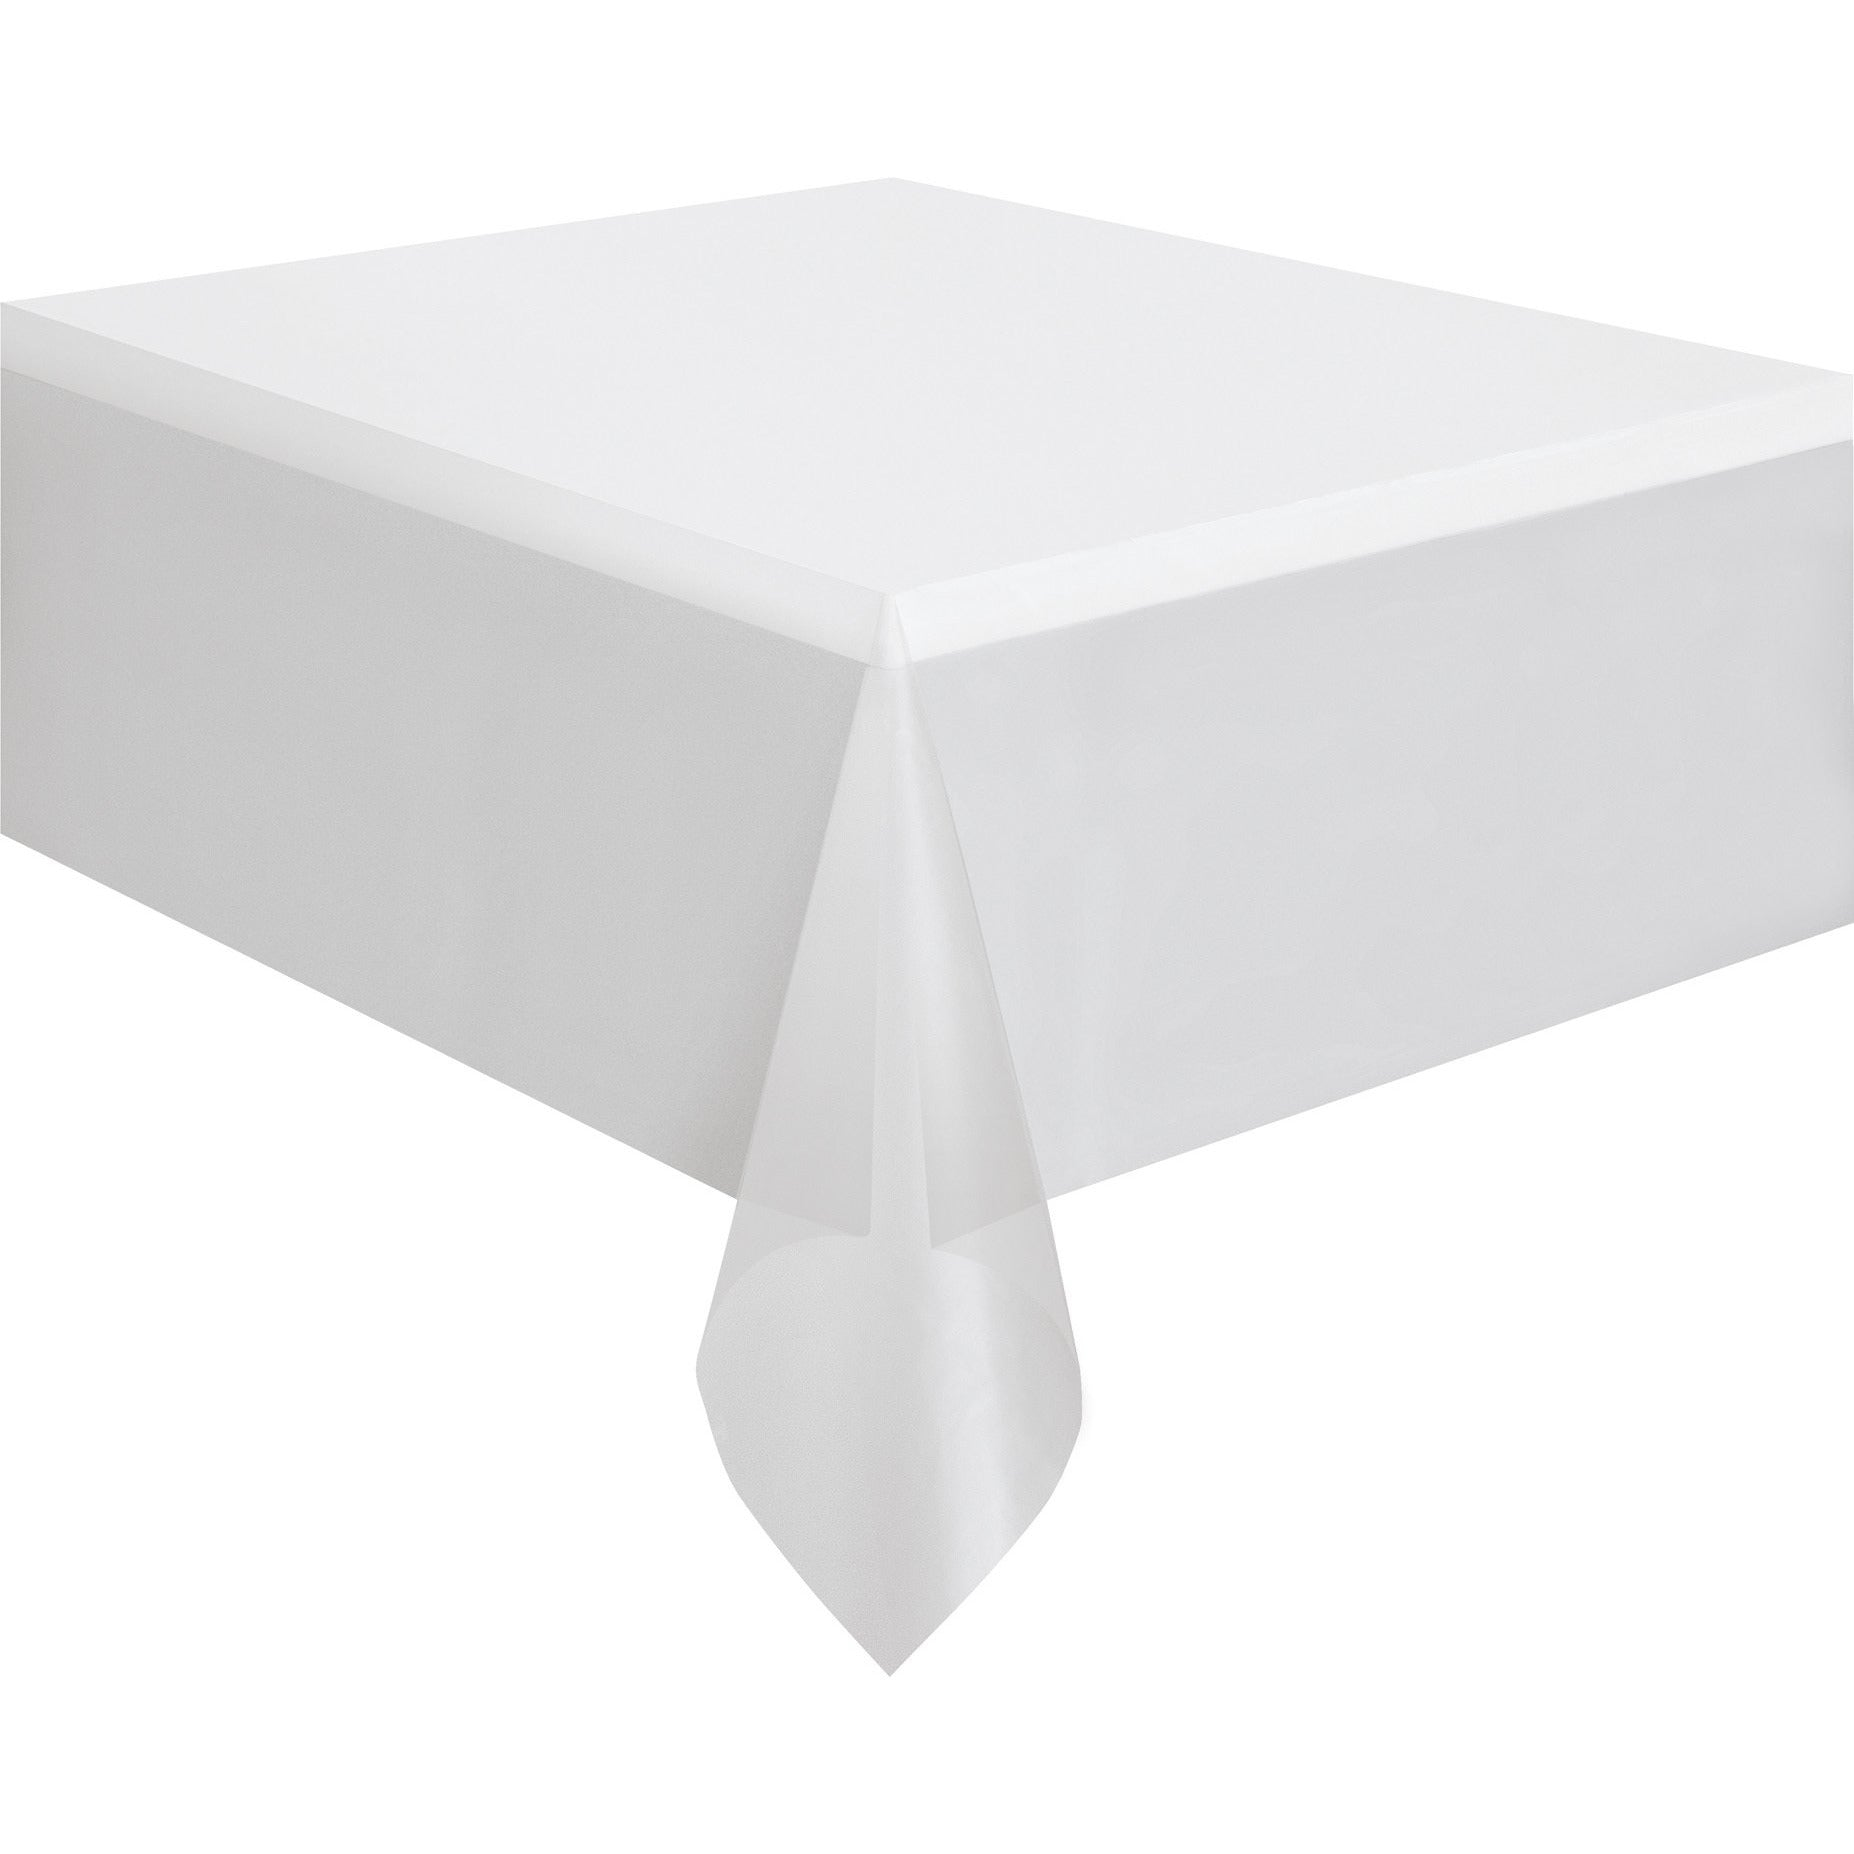 225 & Clear Plastic Table Cover Rectangular